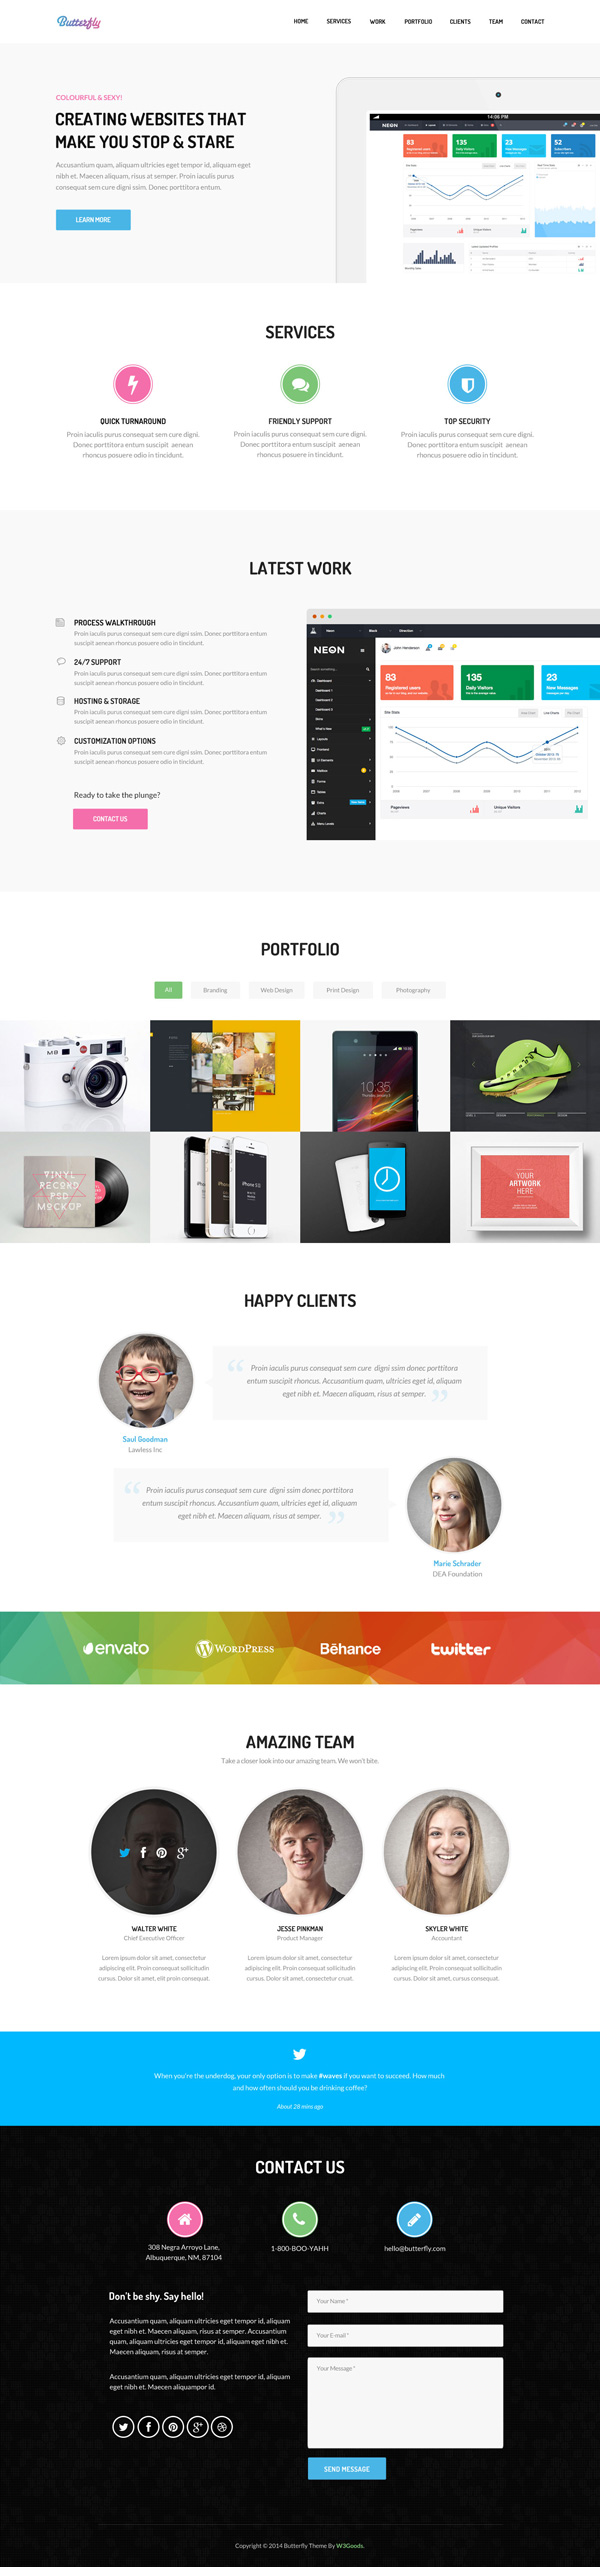 Butterfly – Free Bootstrap Theme | GraphicBurger